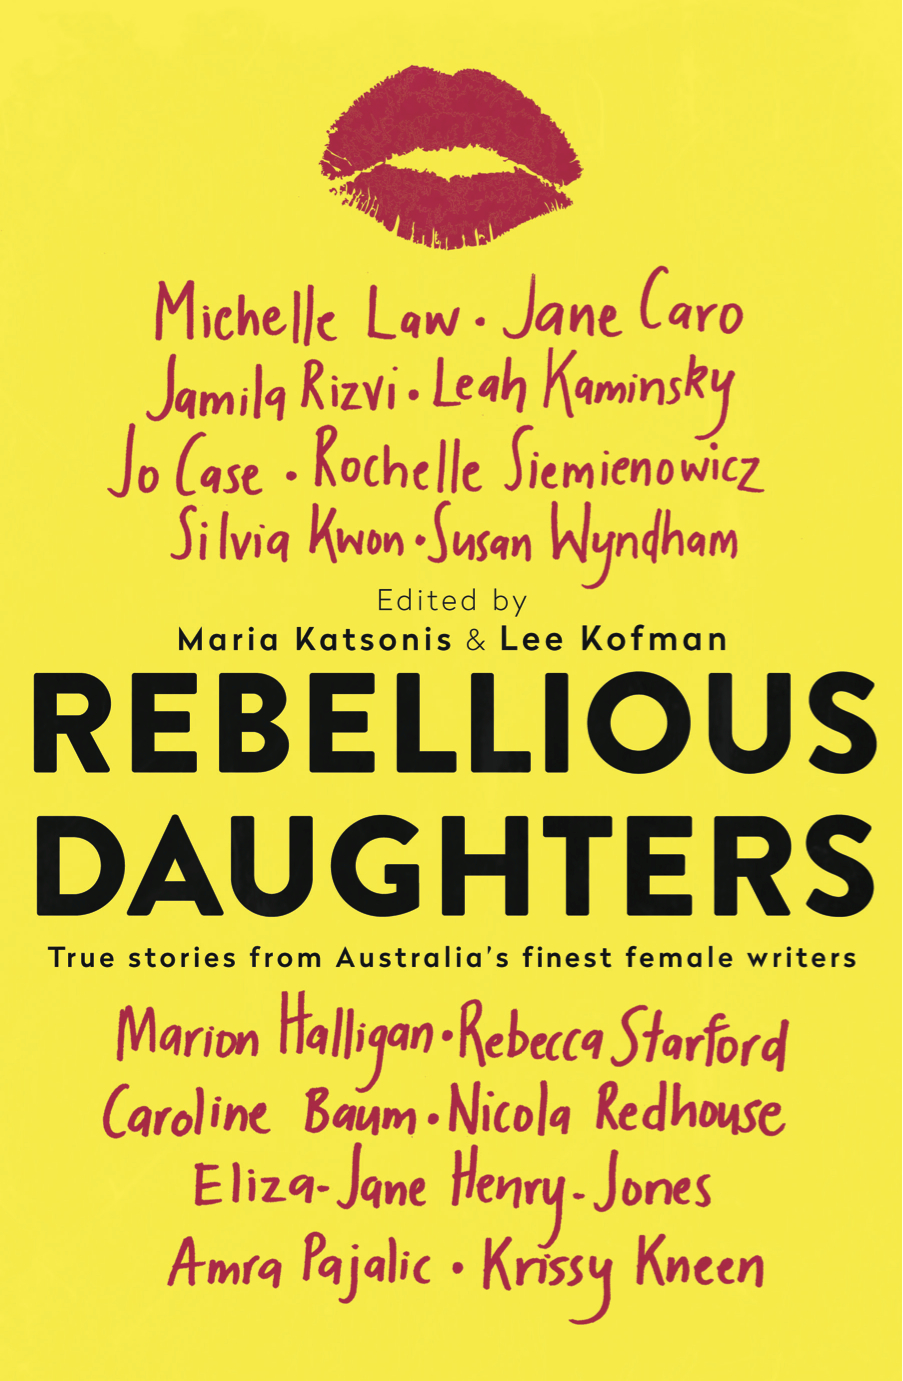 Rebellious Daughters_Book Cover